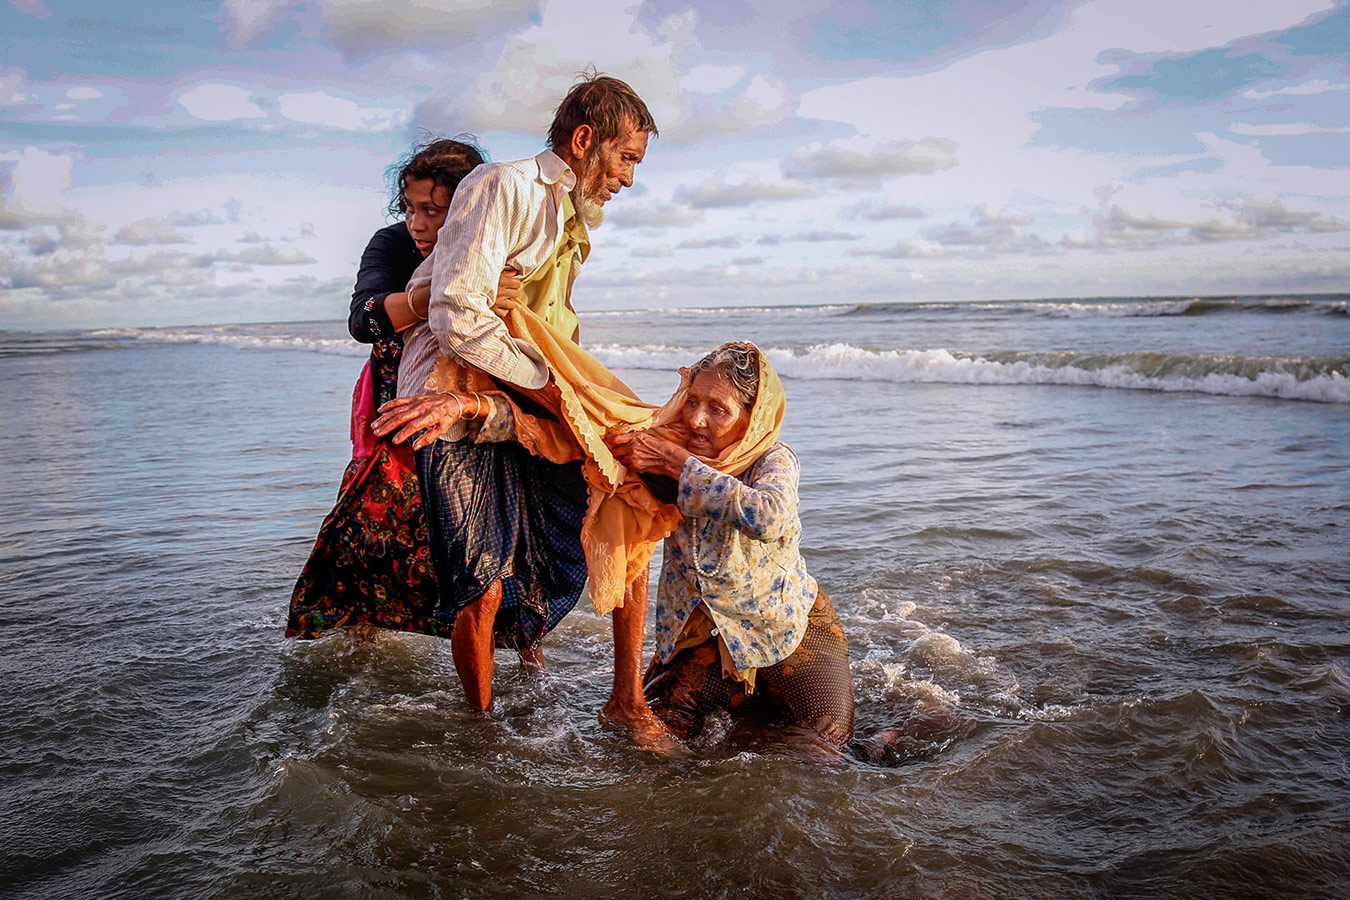 Lost Rights: Rohingya People, © Md. Akhlas Uddin, People Category Expert Winner, CEPIC Stock Photography Awards